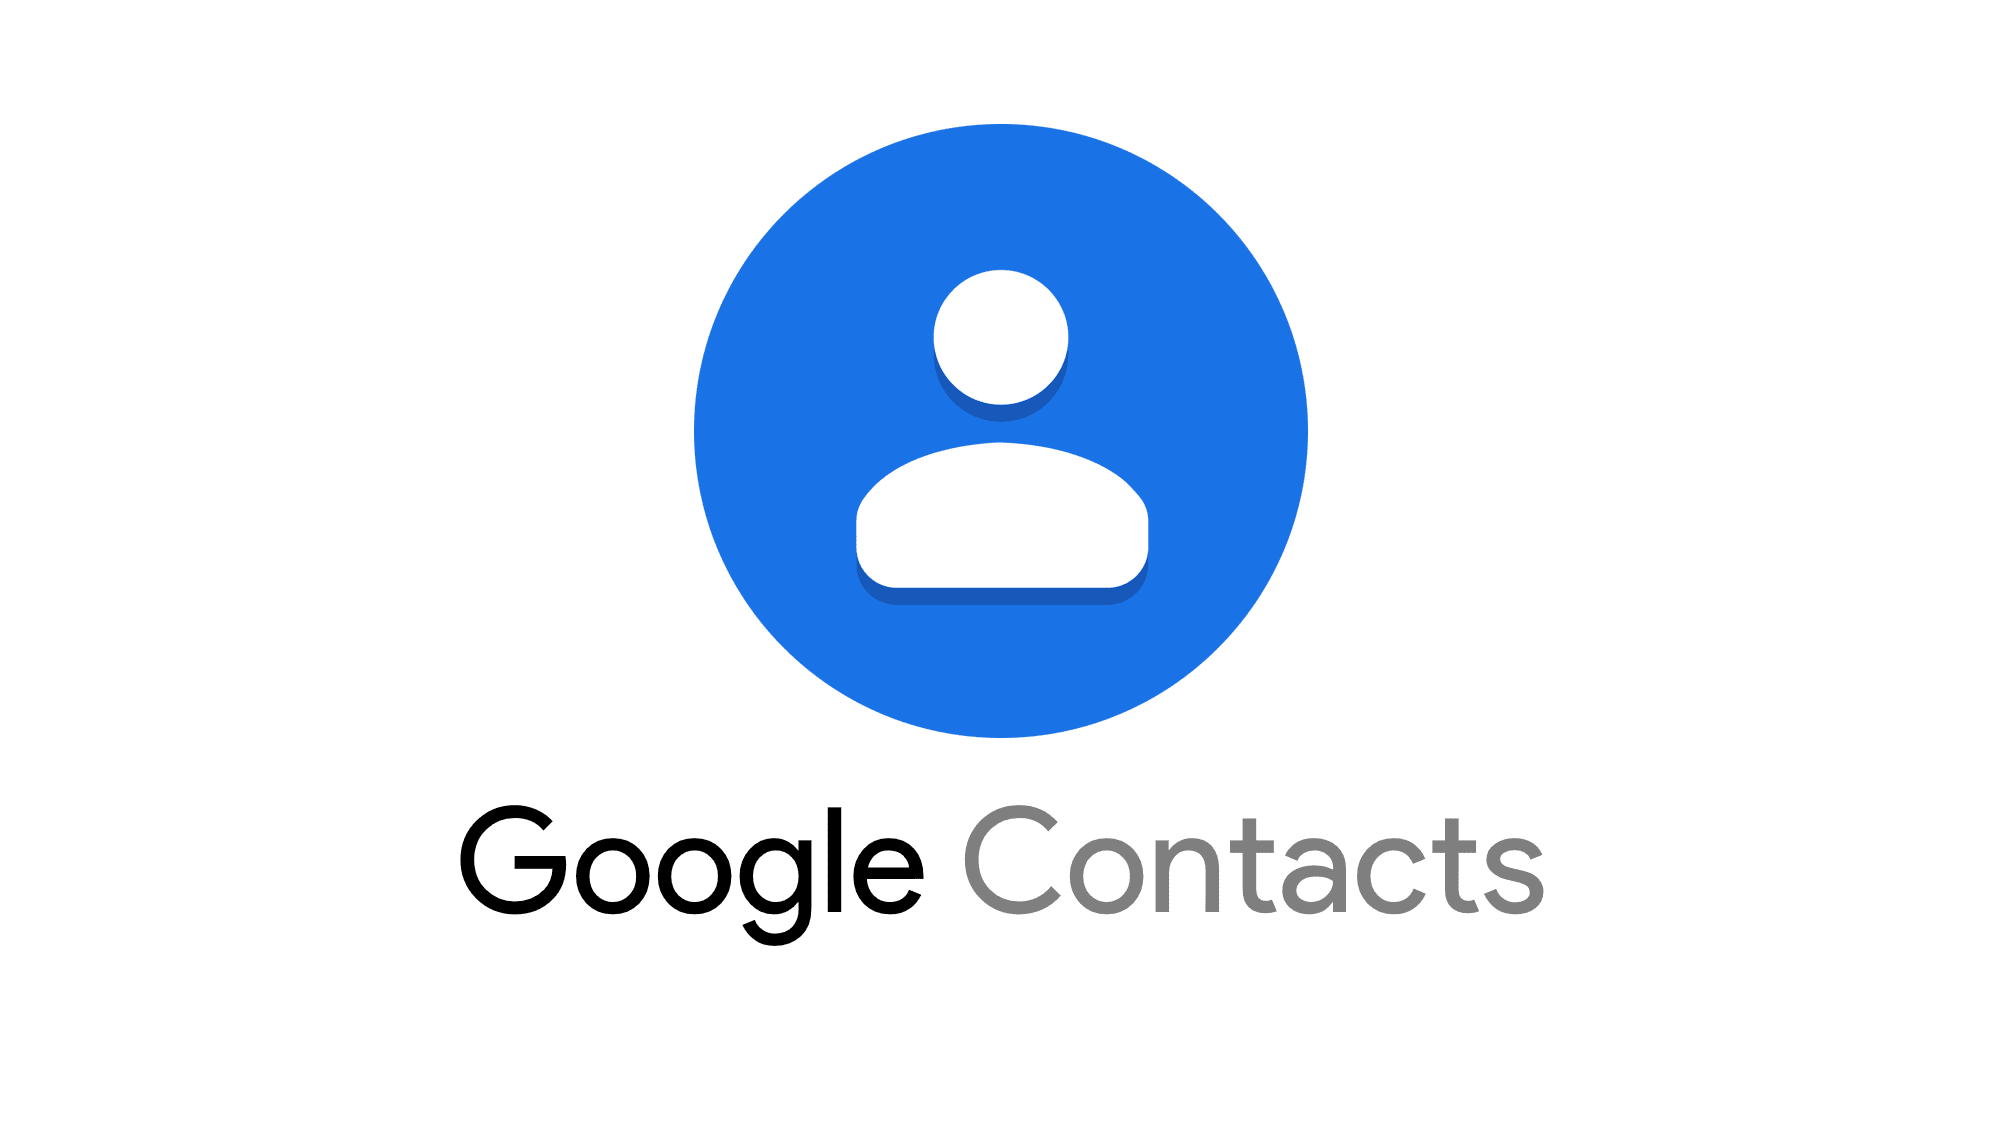 Google: Export contacts - here's how